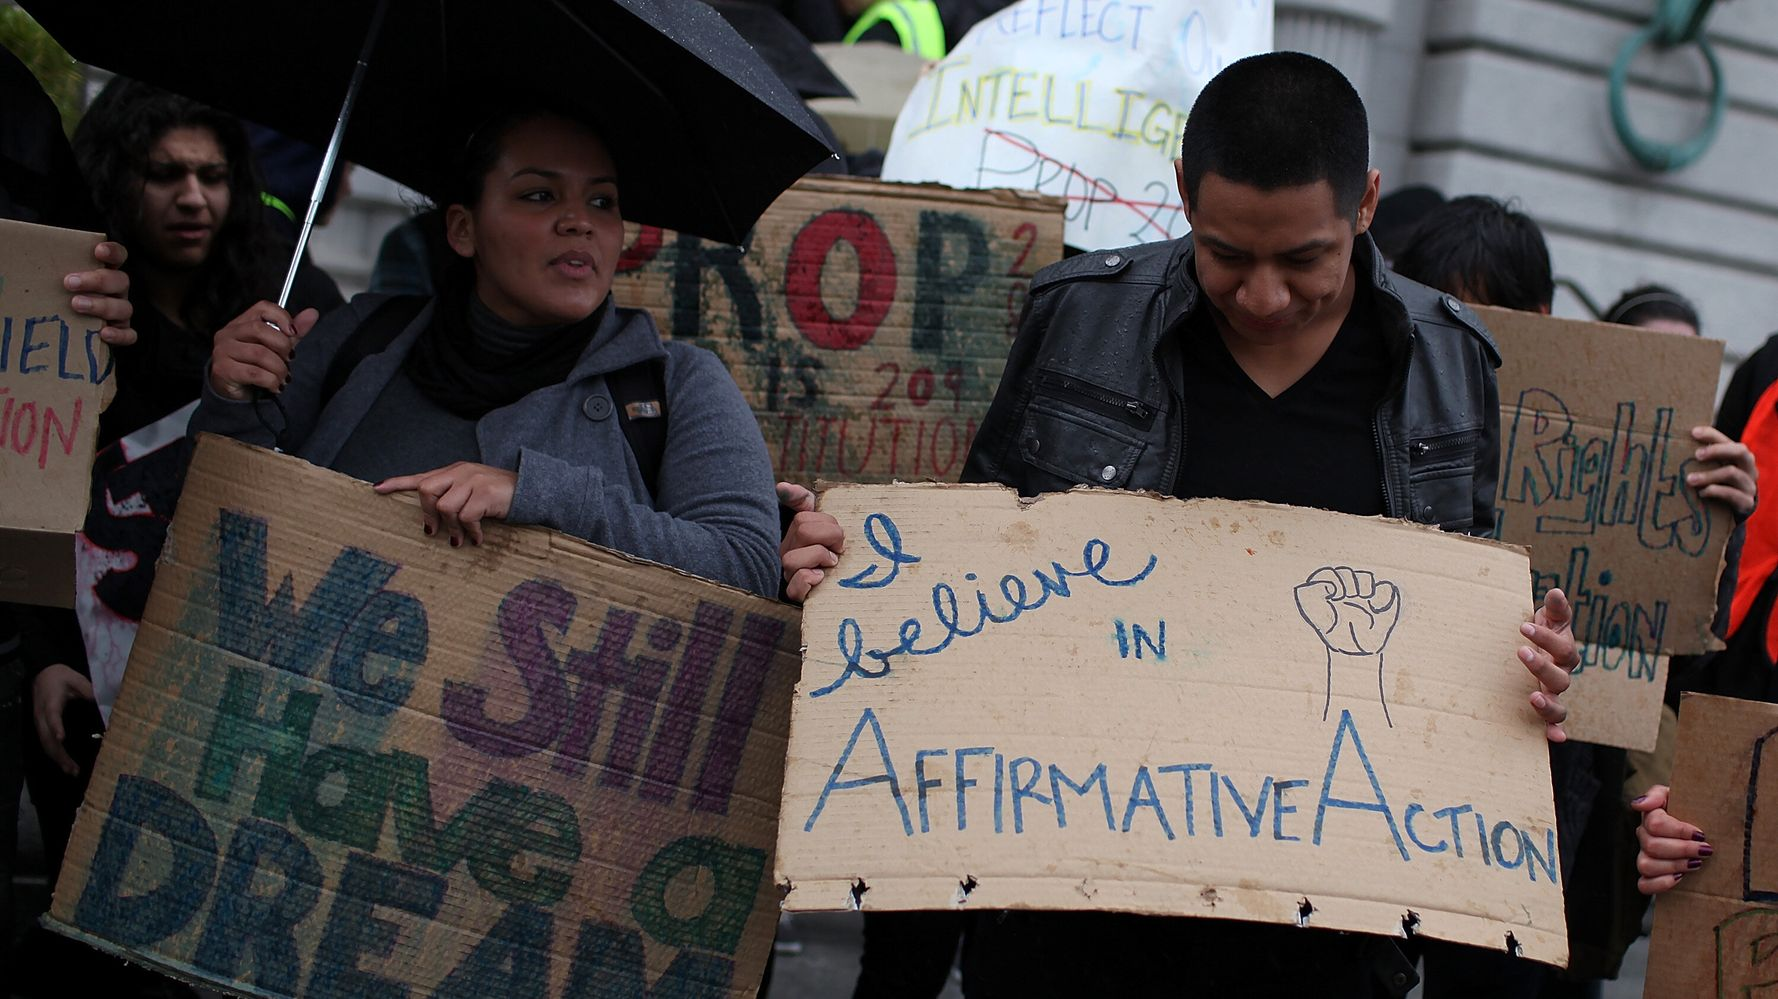 Affirmative Action Supporters Could Finally Revive It In California